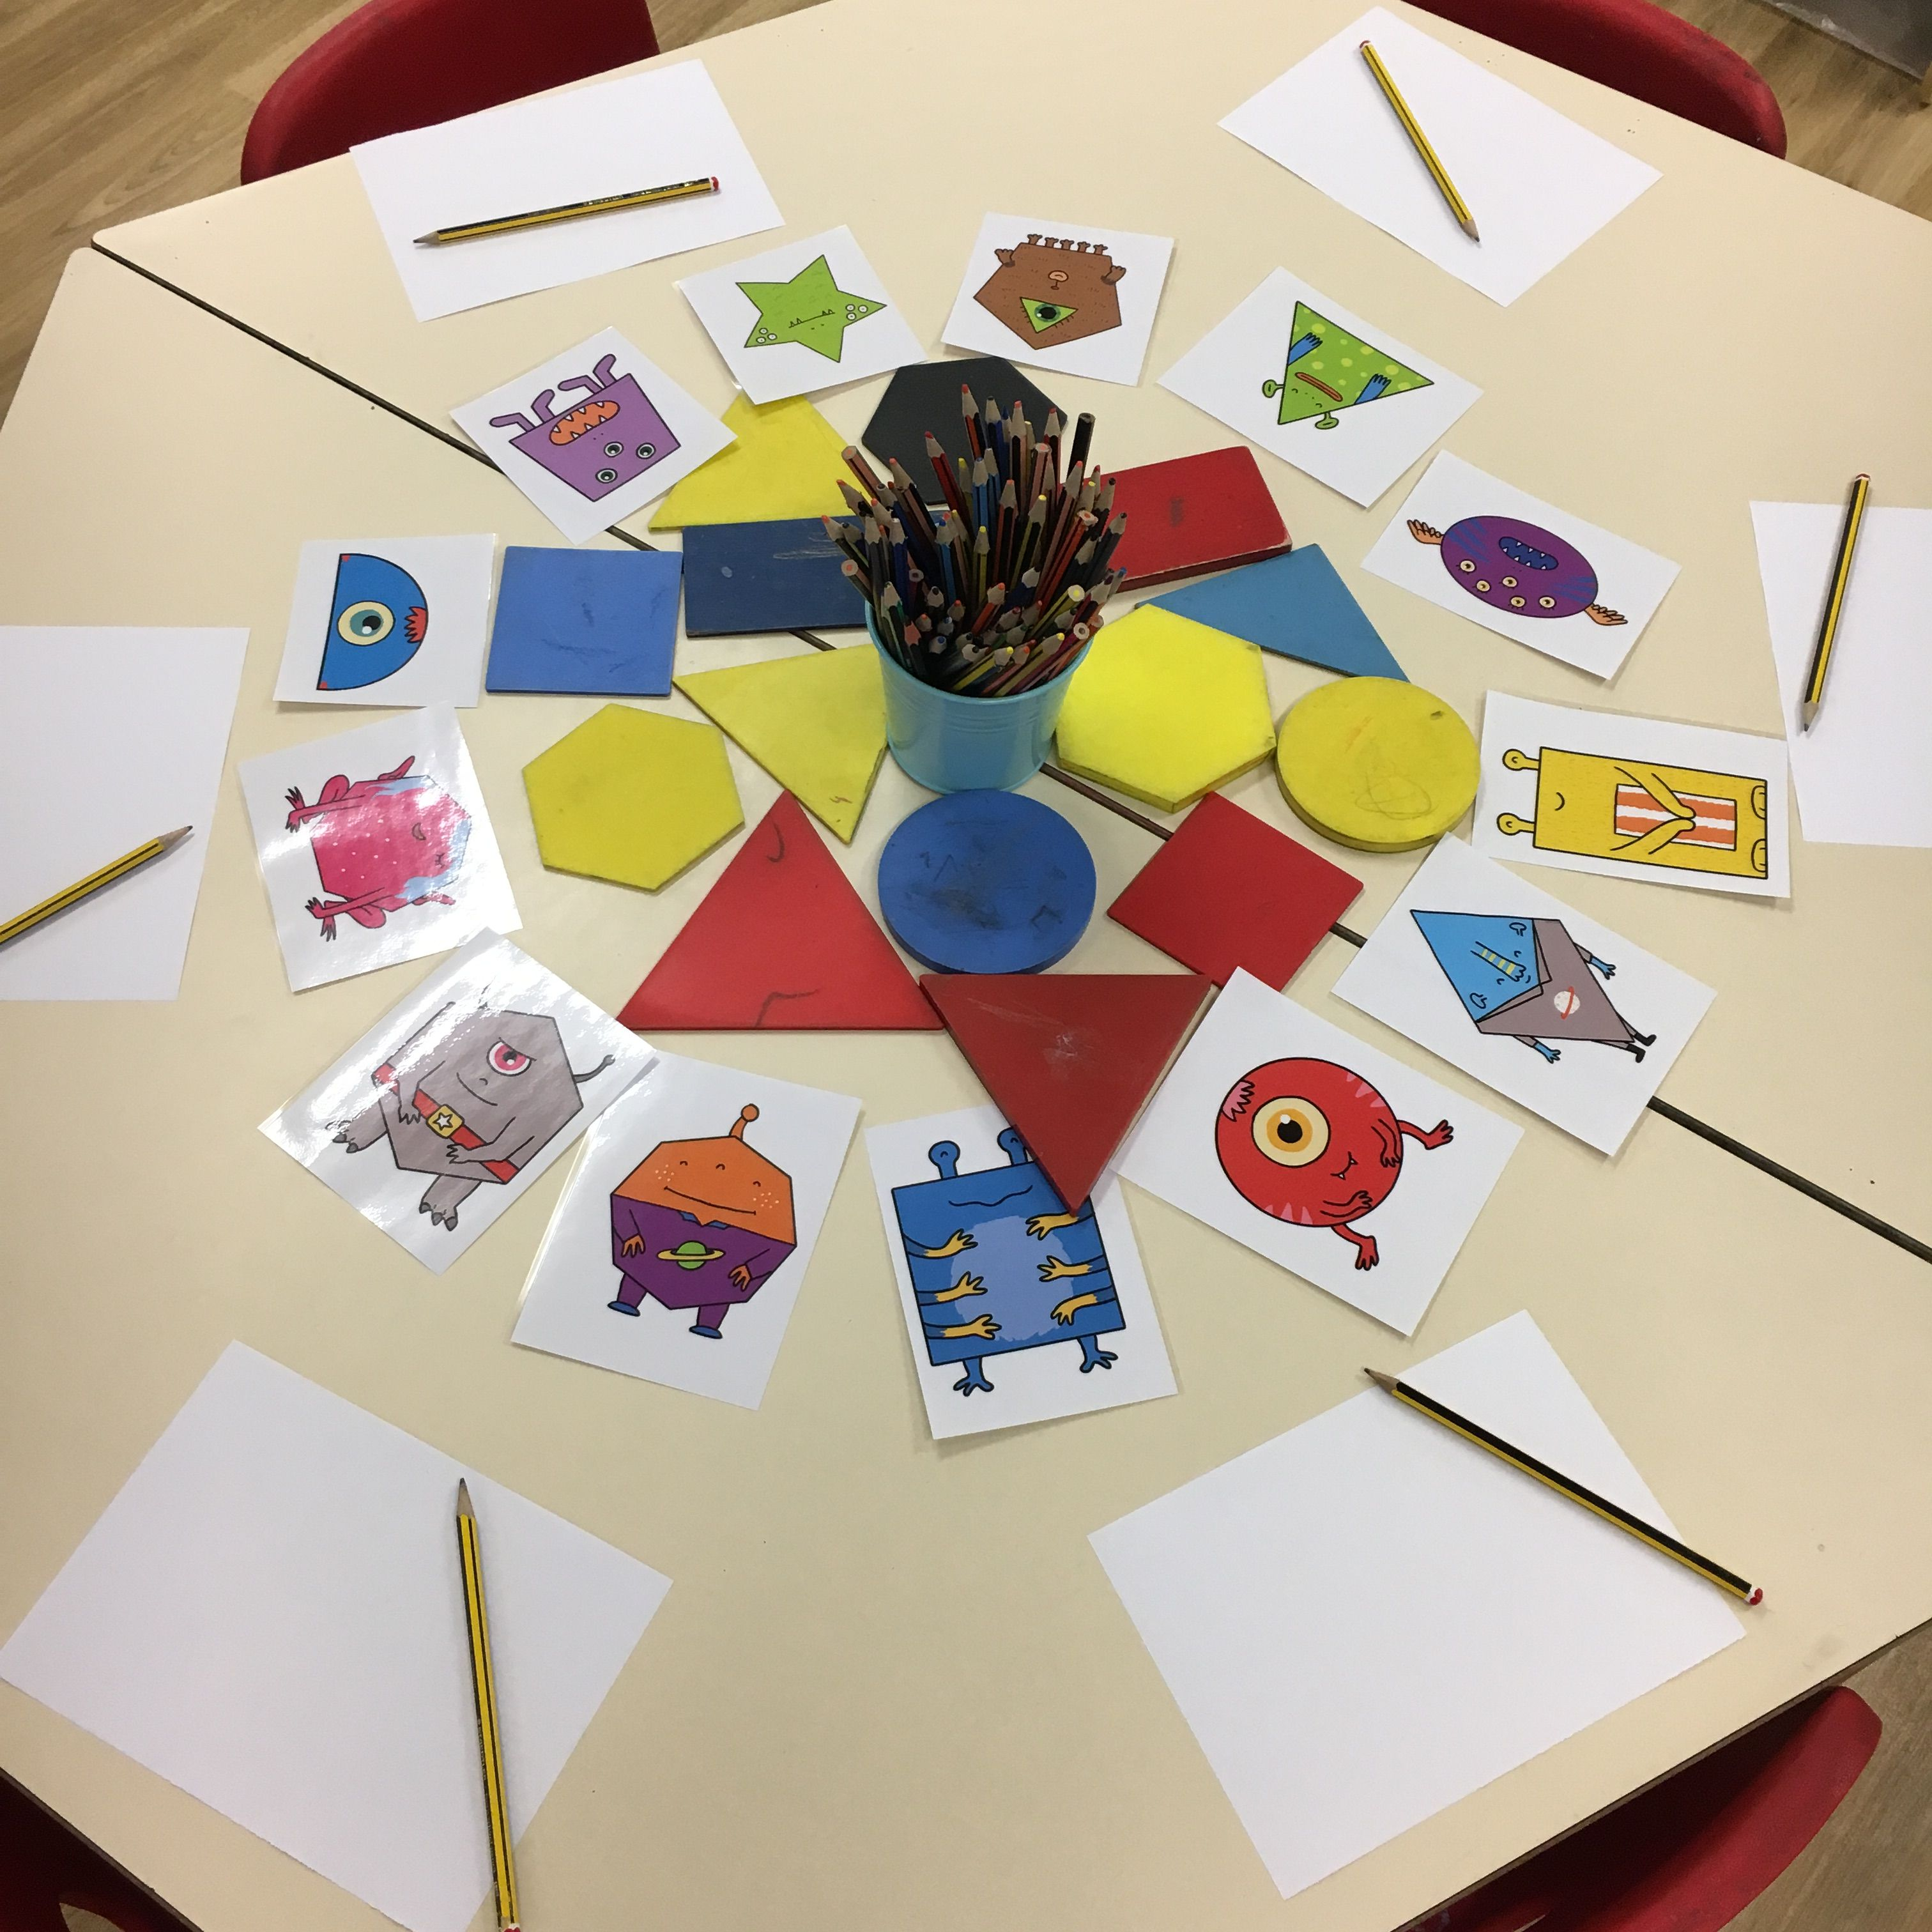 The Children Drew Around One Of The Shapes For The Body Of